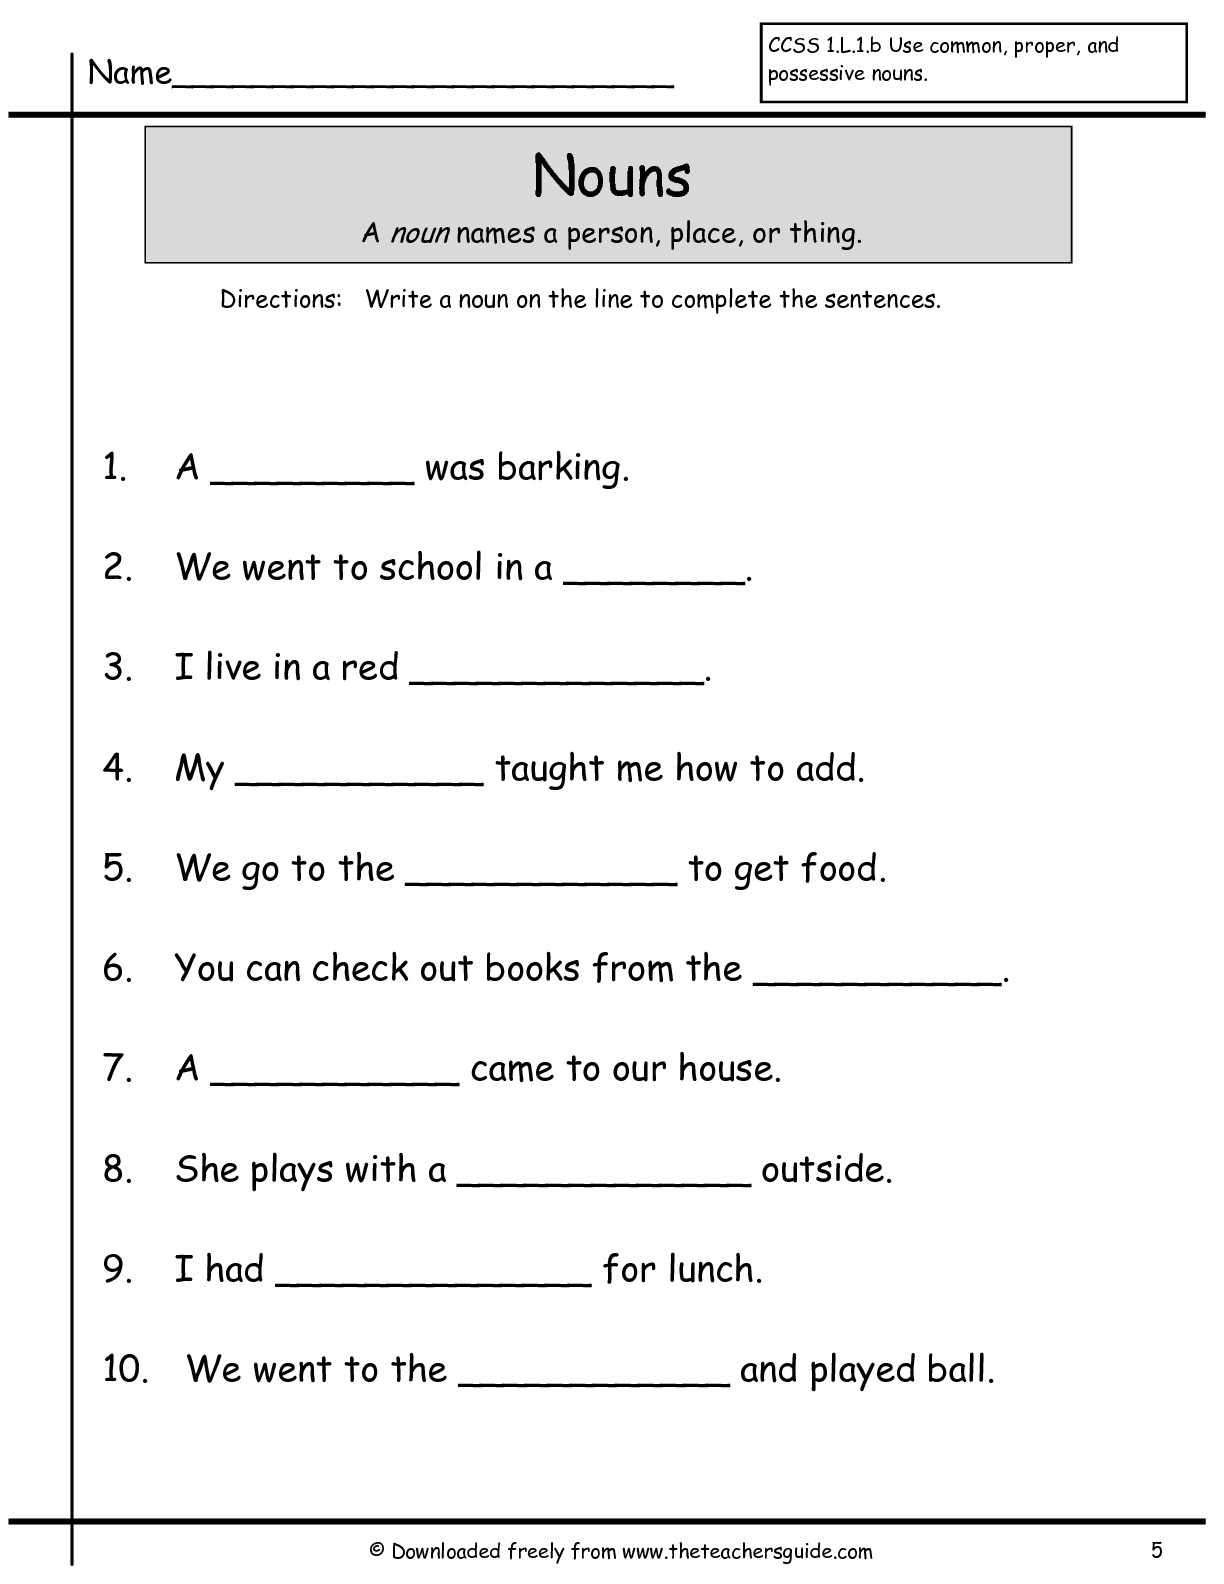 Reading Comprehension Worksheets Free Printable 1st Grade Deployday – Reading Worksheets for First Grade